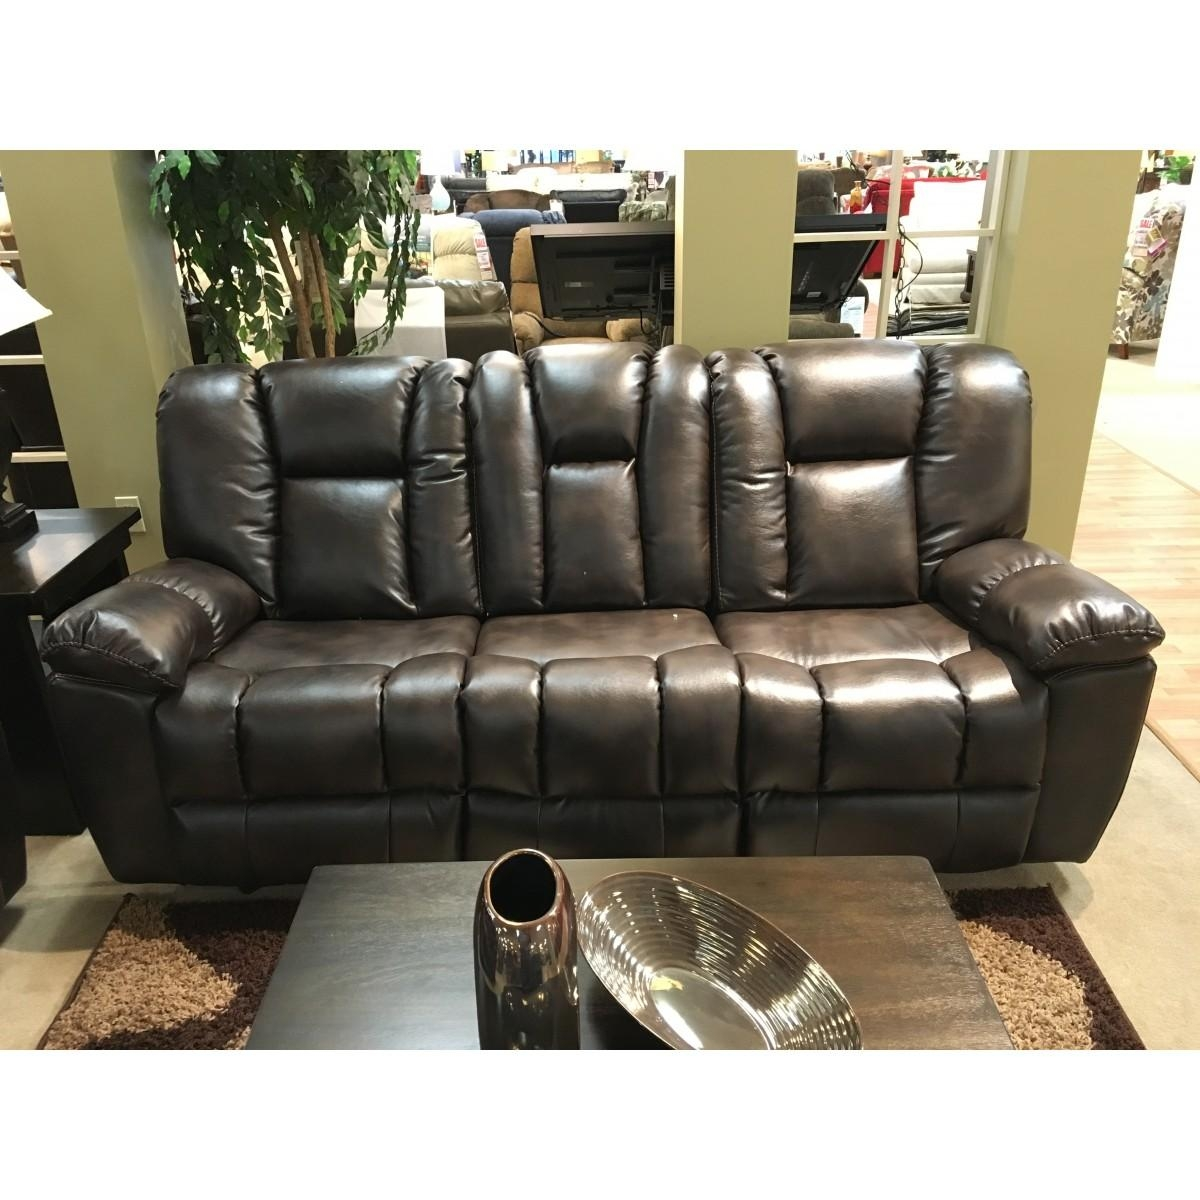 Cheers Furniture Glide Recliner Within Cheers Leather Sofas (Image 4 of 20)